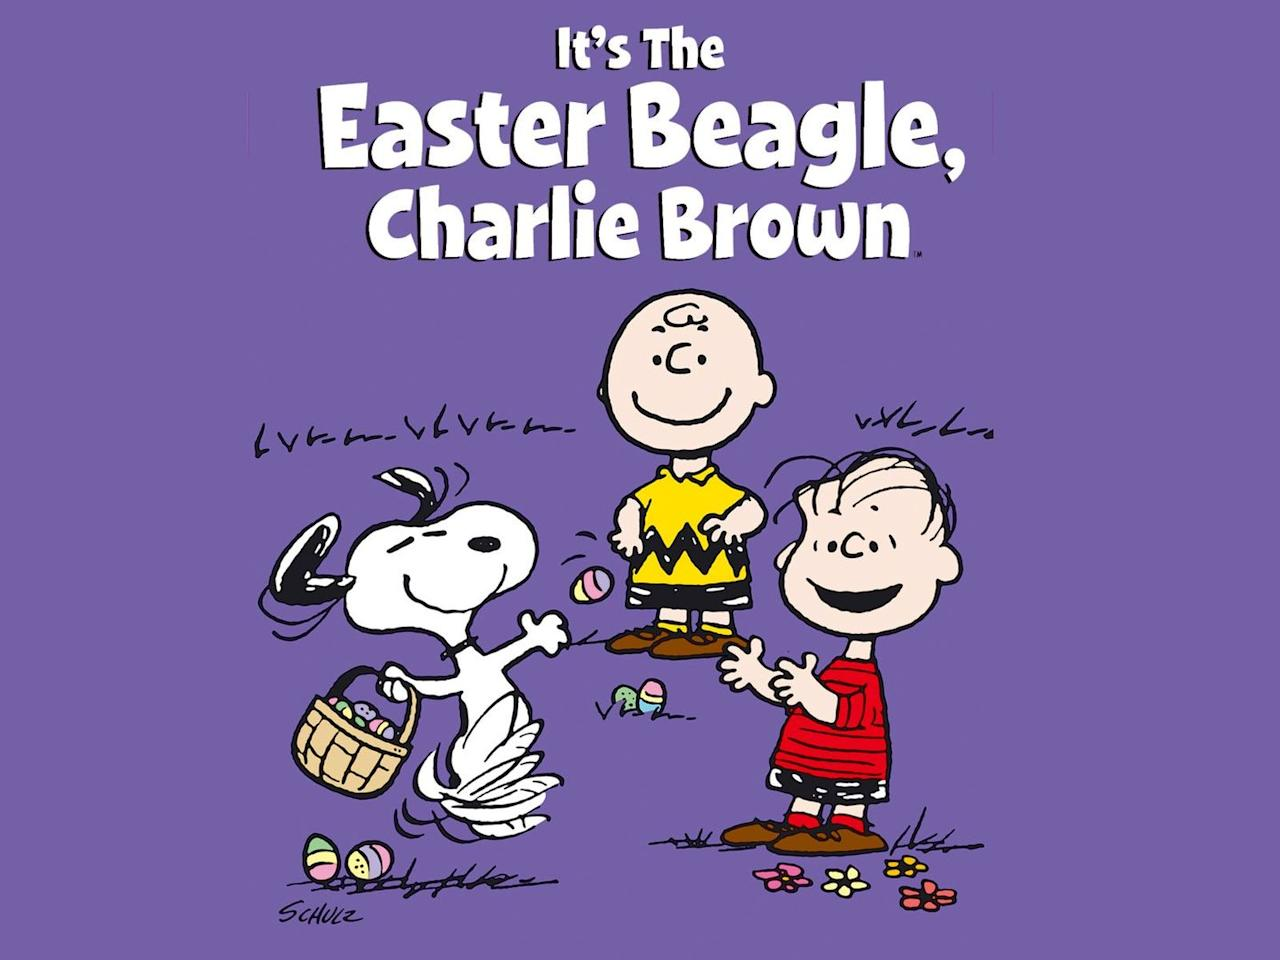 """<p>Who doesn't love a holiday story brought to you by the Peanuts gang? This Easter classic centers around your favorite characters including Snoopy and Charlie Brown. </p><p><a class=""""body-btn-link"""" href=""""https://www.amazon.com/Its-Easter-Beagle-Charlie-Brown/dp/B00007LP8I?tag=syn-yahoo-20&ascsubtag=%5Bartid%7C10070.g.16643651%5Bsrc%7Cyahoo-us"""" target=""""_blank"""">WATCH NOW</a></p>"""